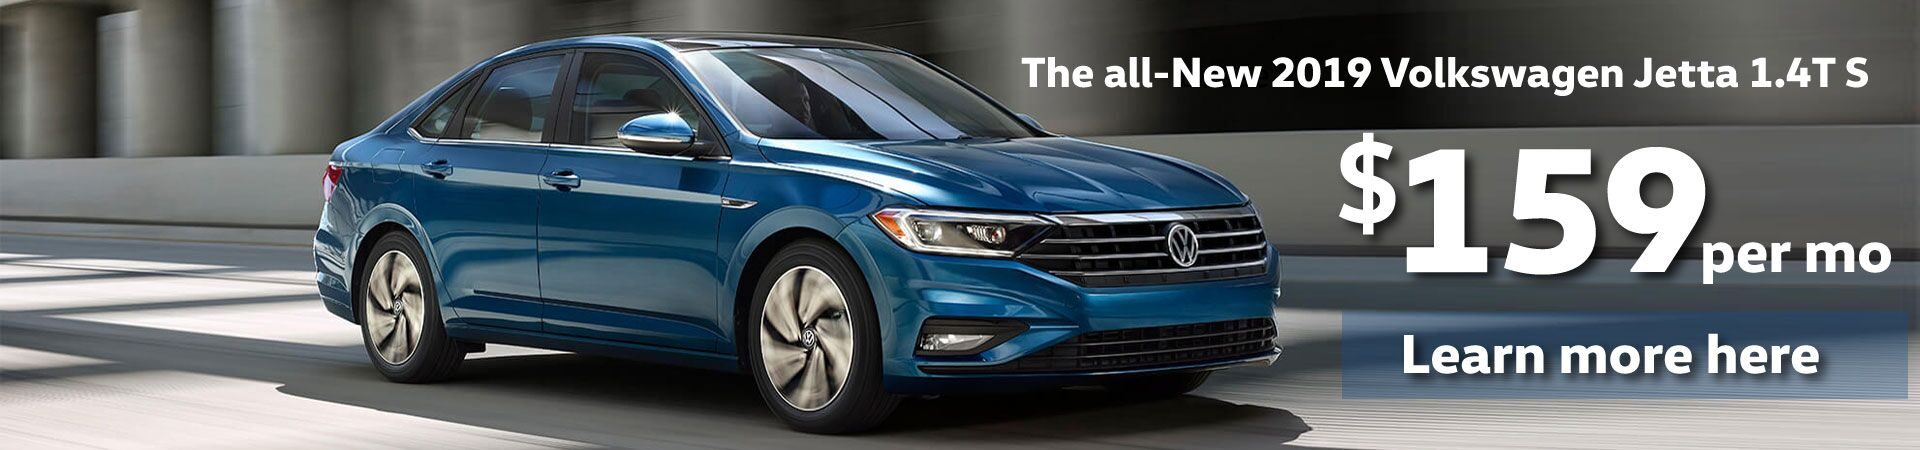 Lease the all-New 2019 VW Jetta 1.4T S for $159 per month!